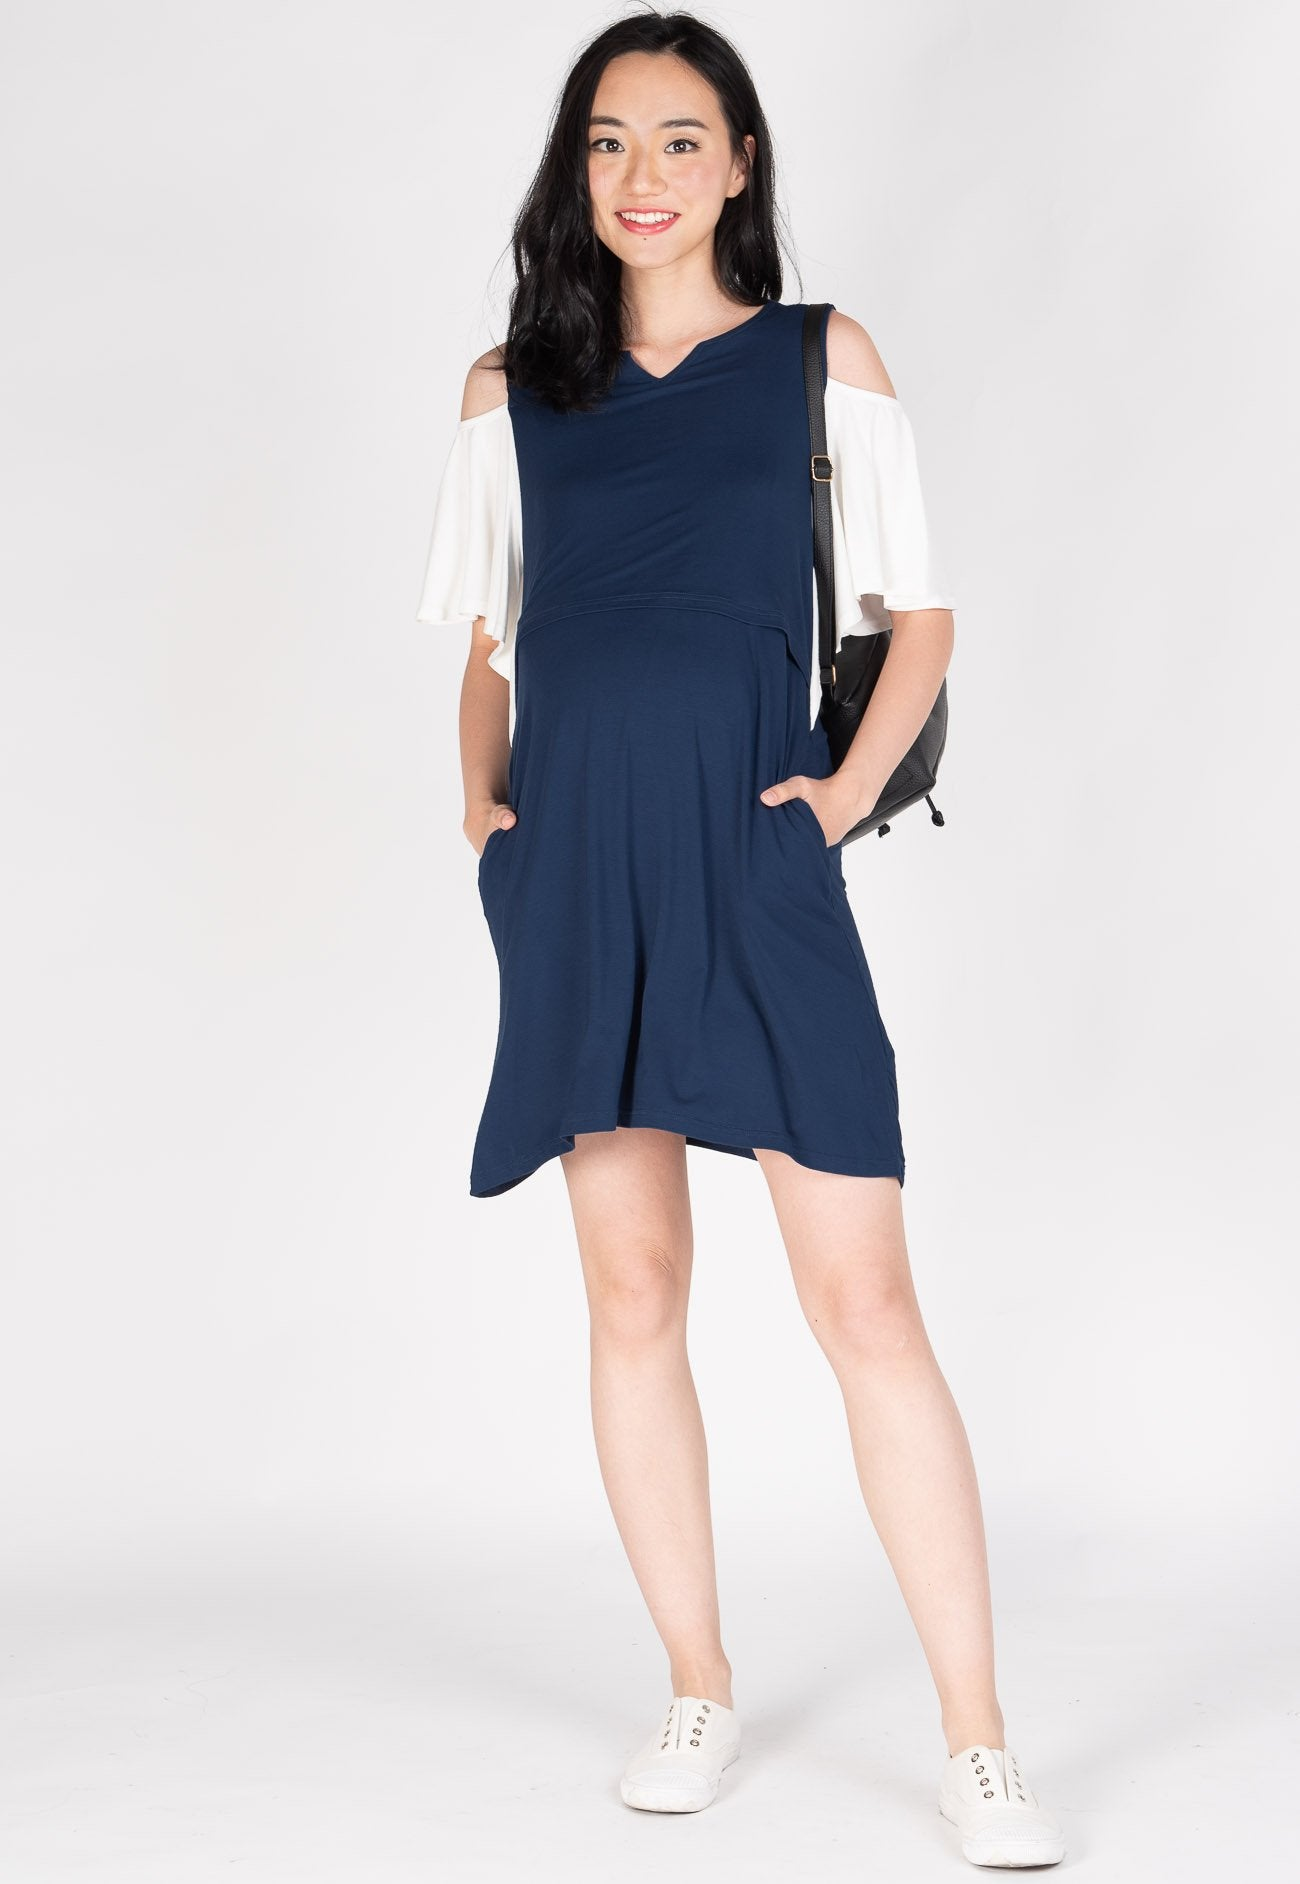 Naila Cutout Nursing Dress in Navy  by Jump Eat Cry - Maternity and nursing wear